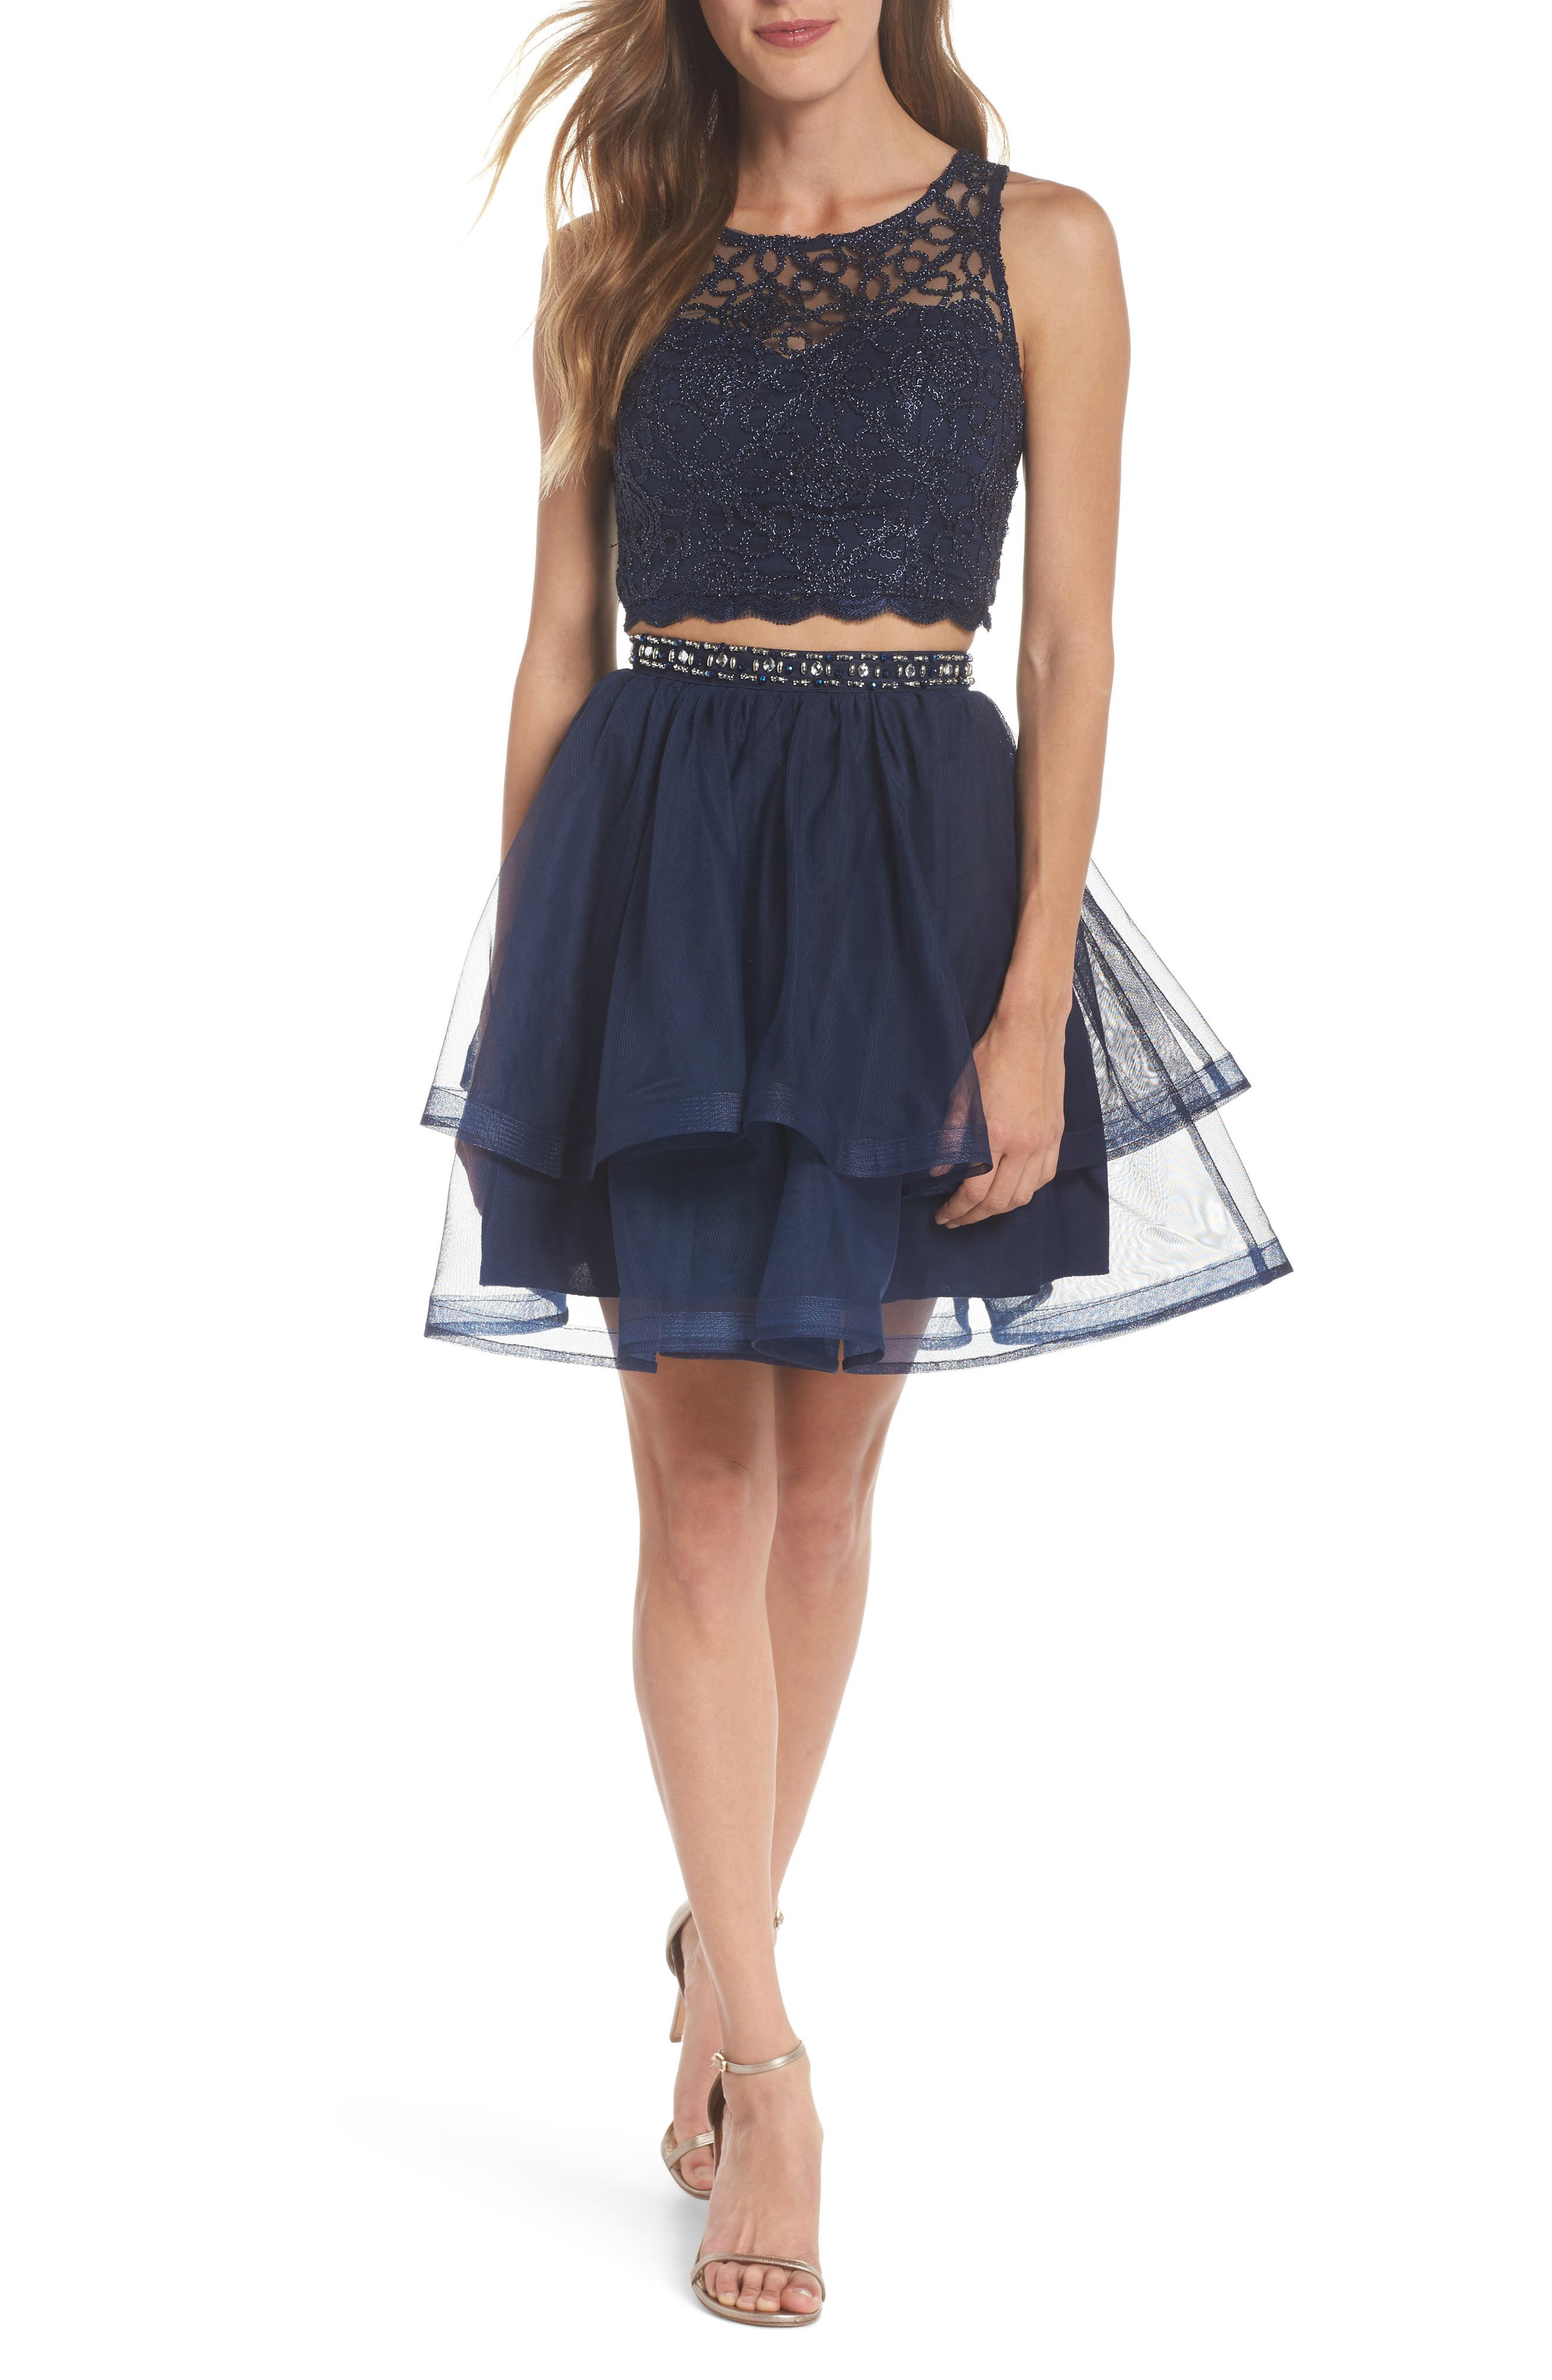 Main Image - Sequin Hearts Chain Lace Mesh Two-Piece Dress